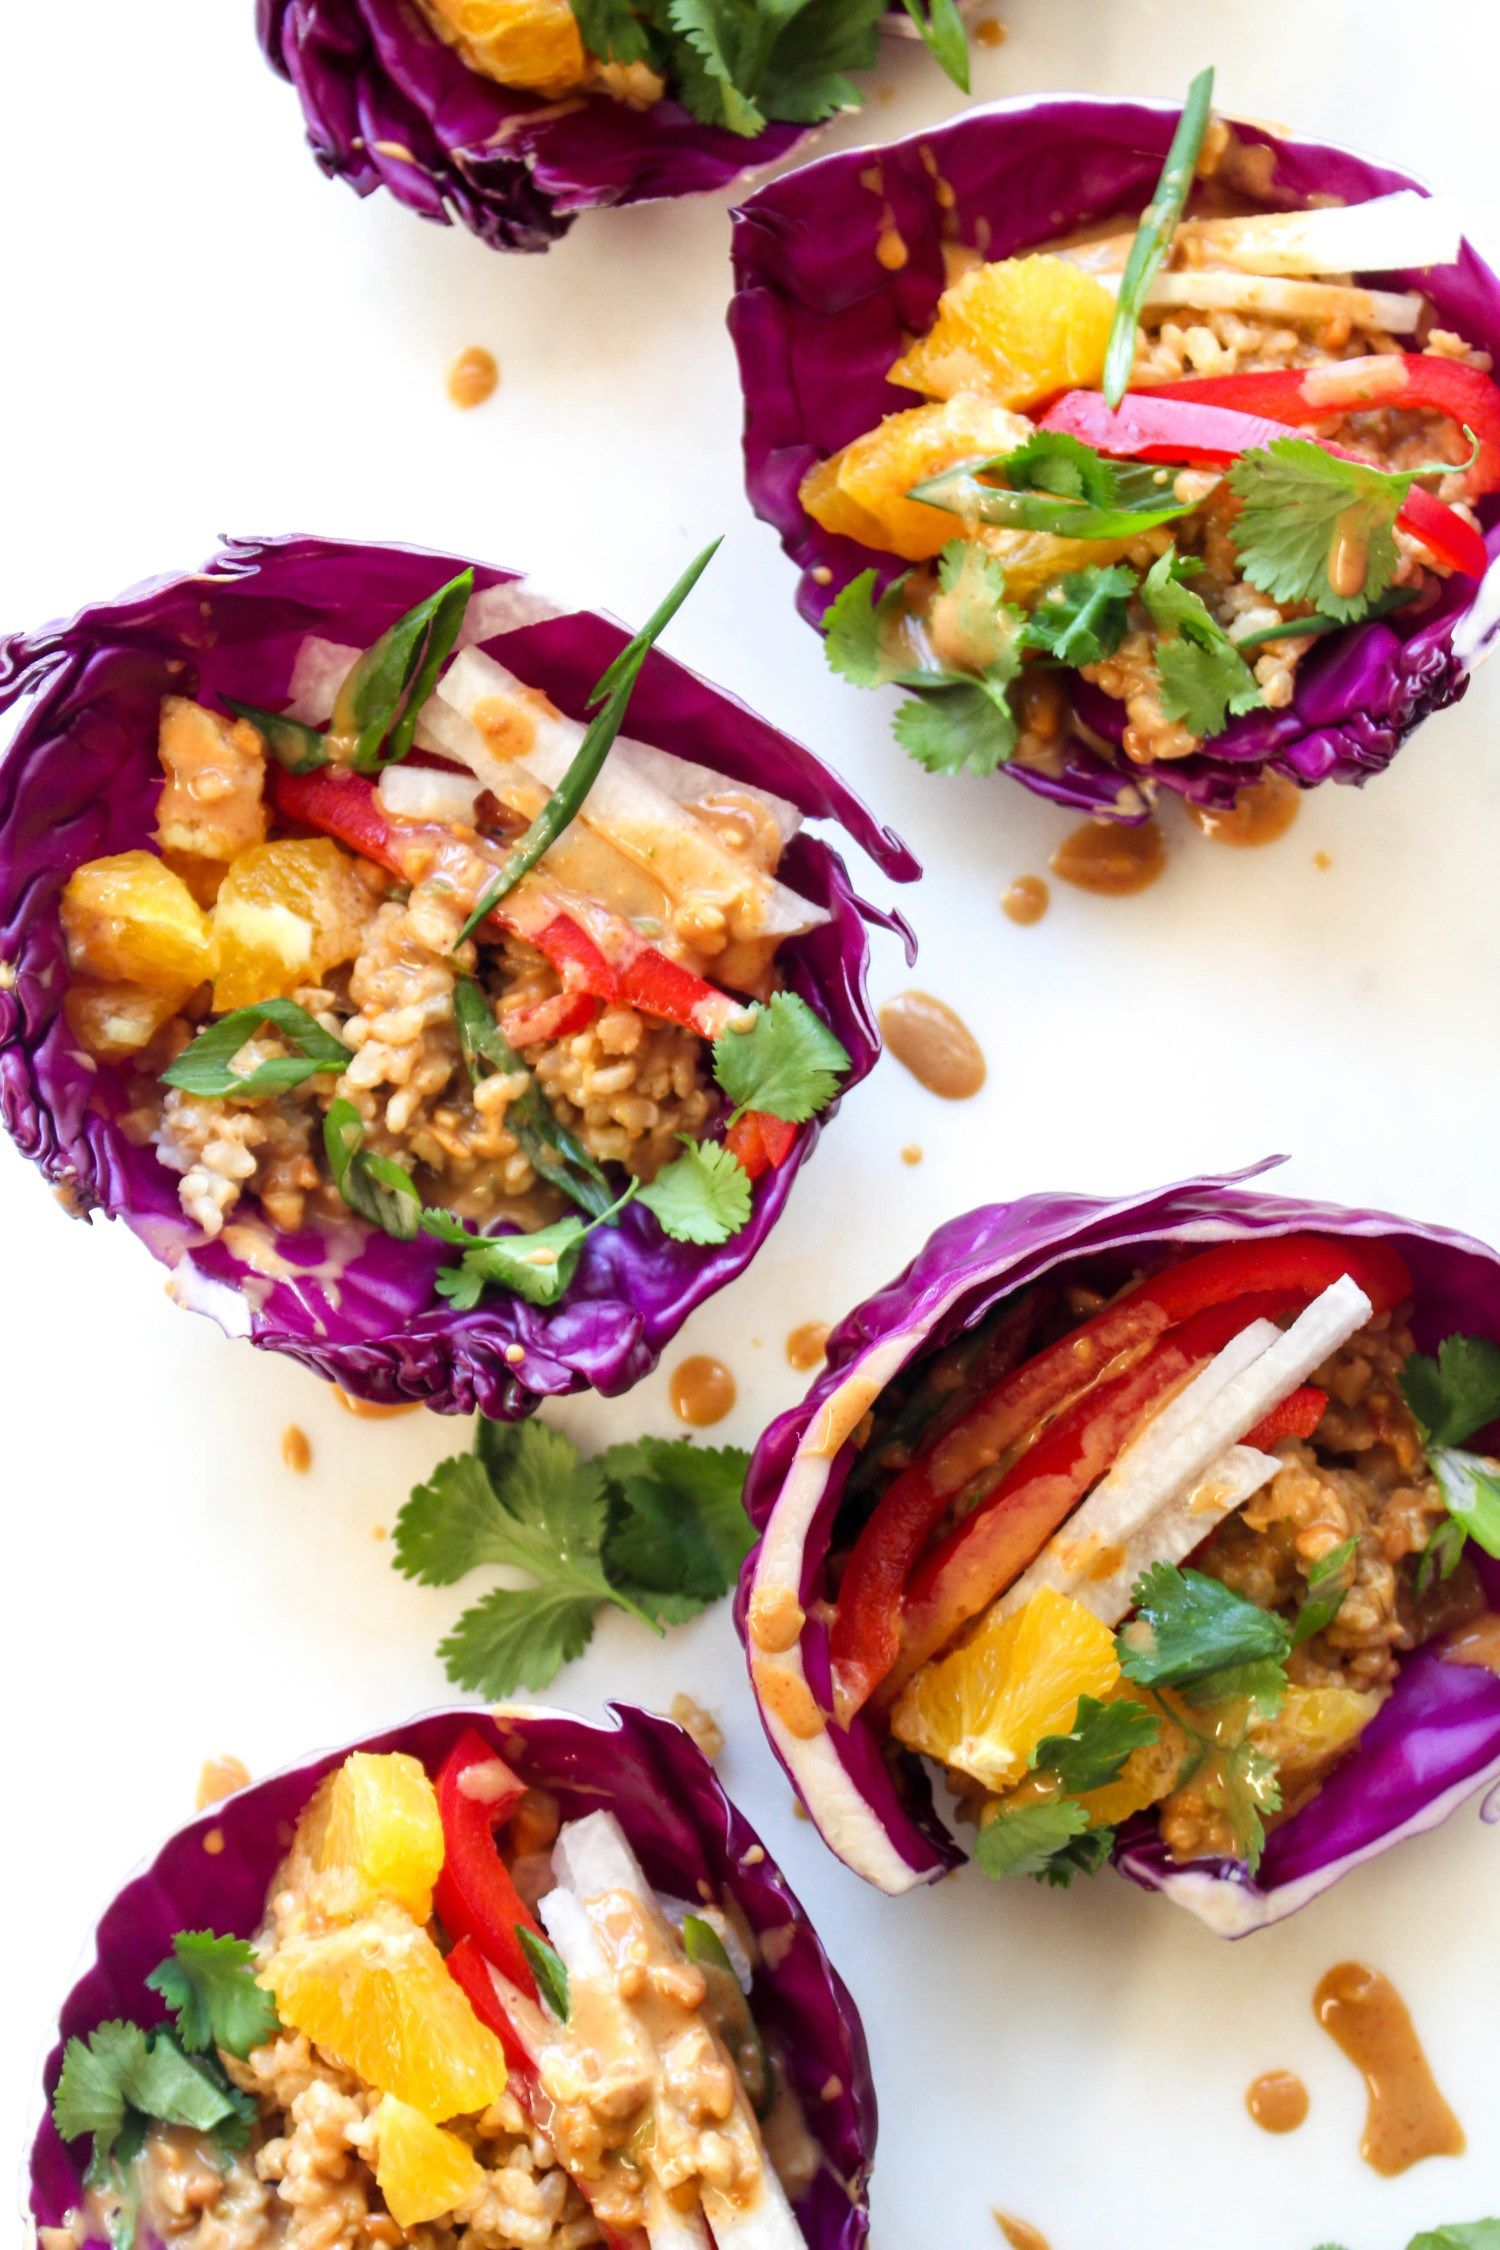 This Thai wrap recipe is bursting with healthy flavor! A great lunch or dinner idea!